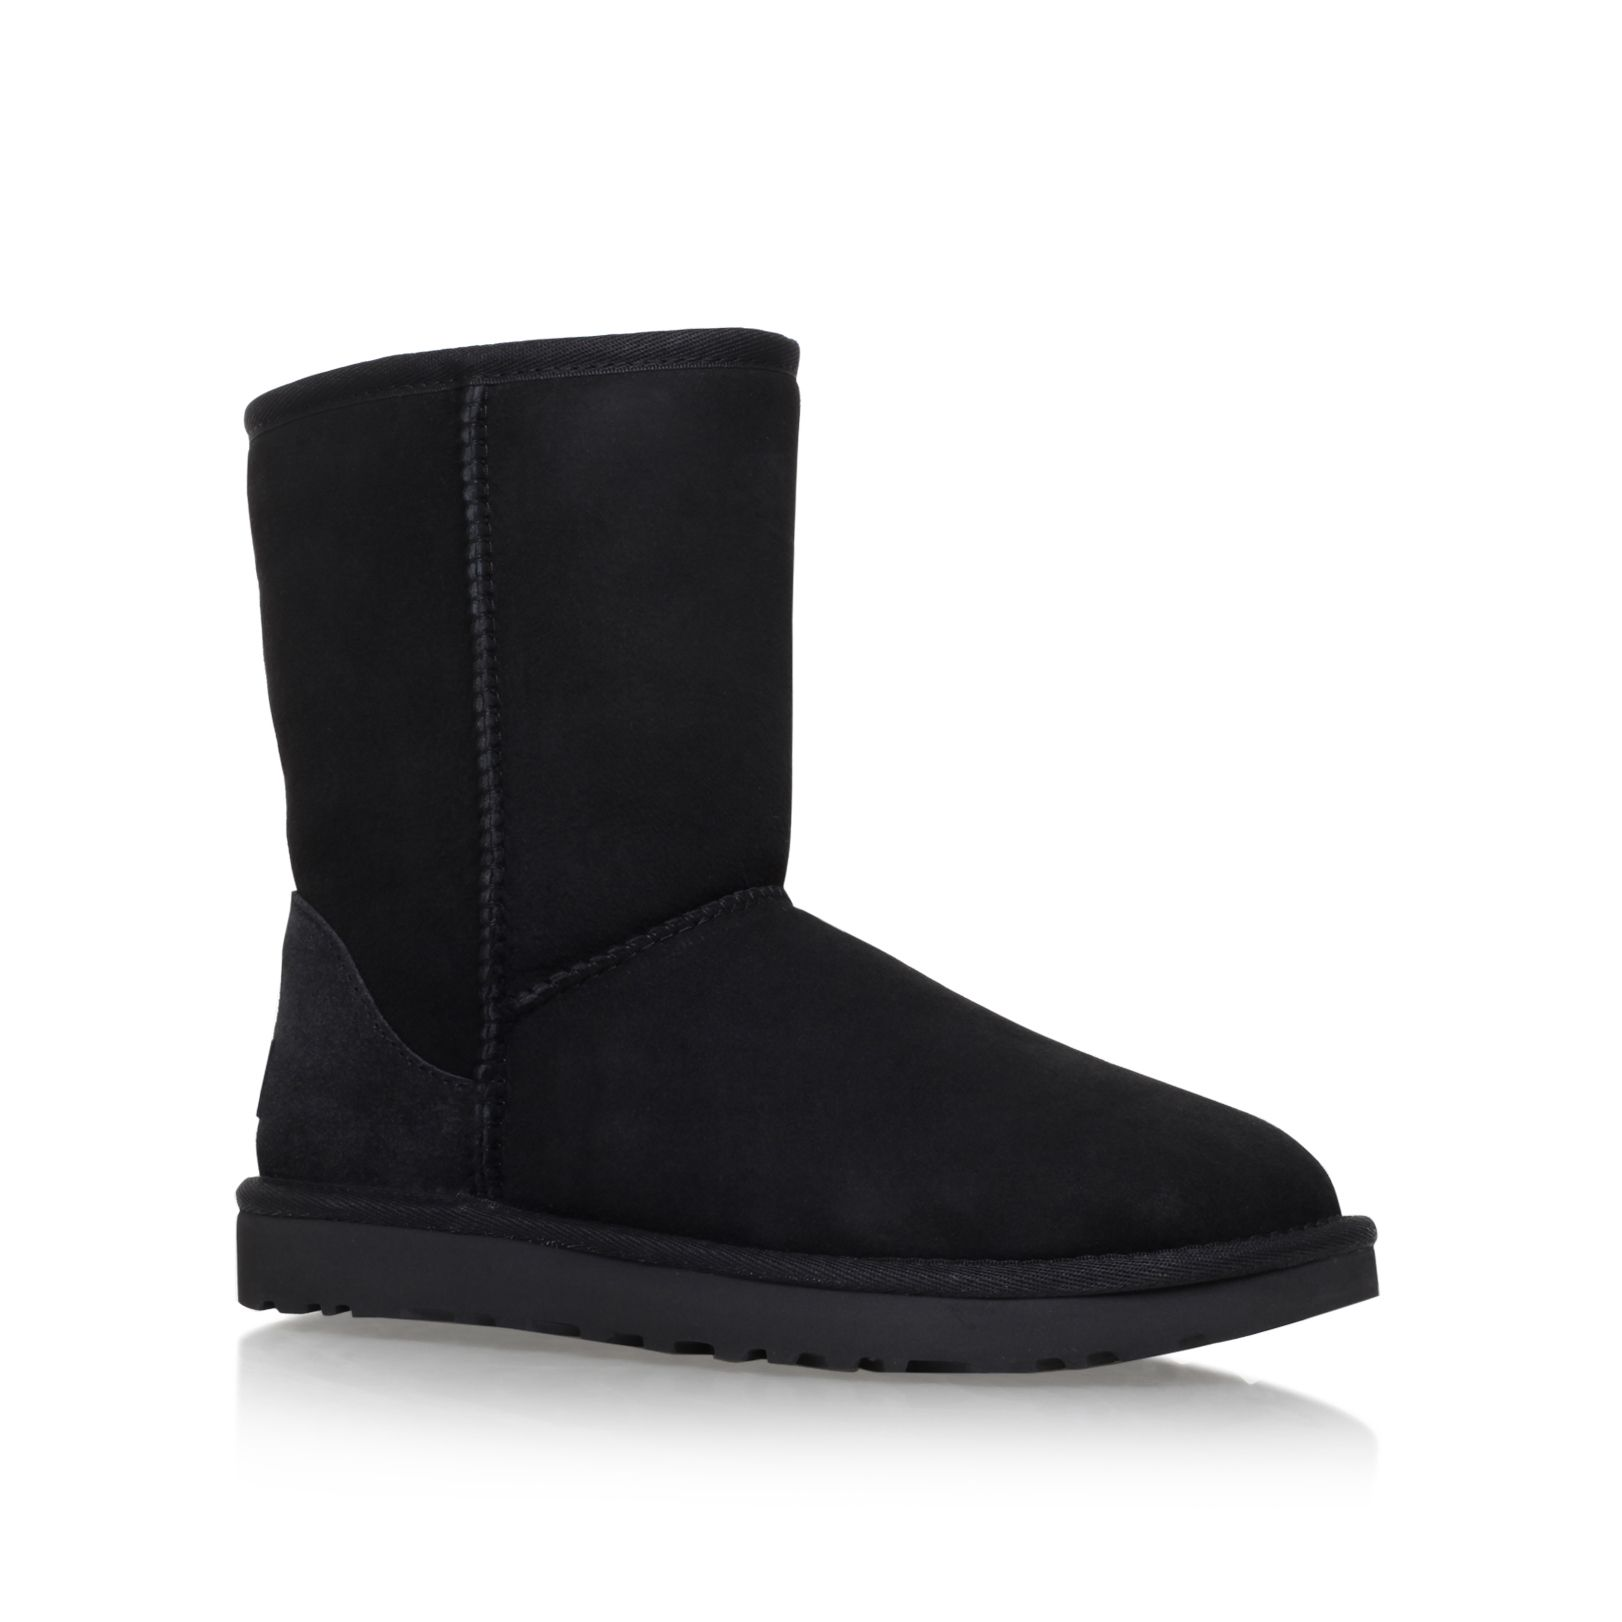 Get the latest UGG® slippers, boots, loungewear, clothing and more for women at agencja-nieruchomosci.tk, and get free shipping and free returns all the time.